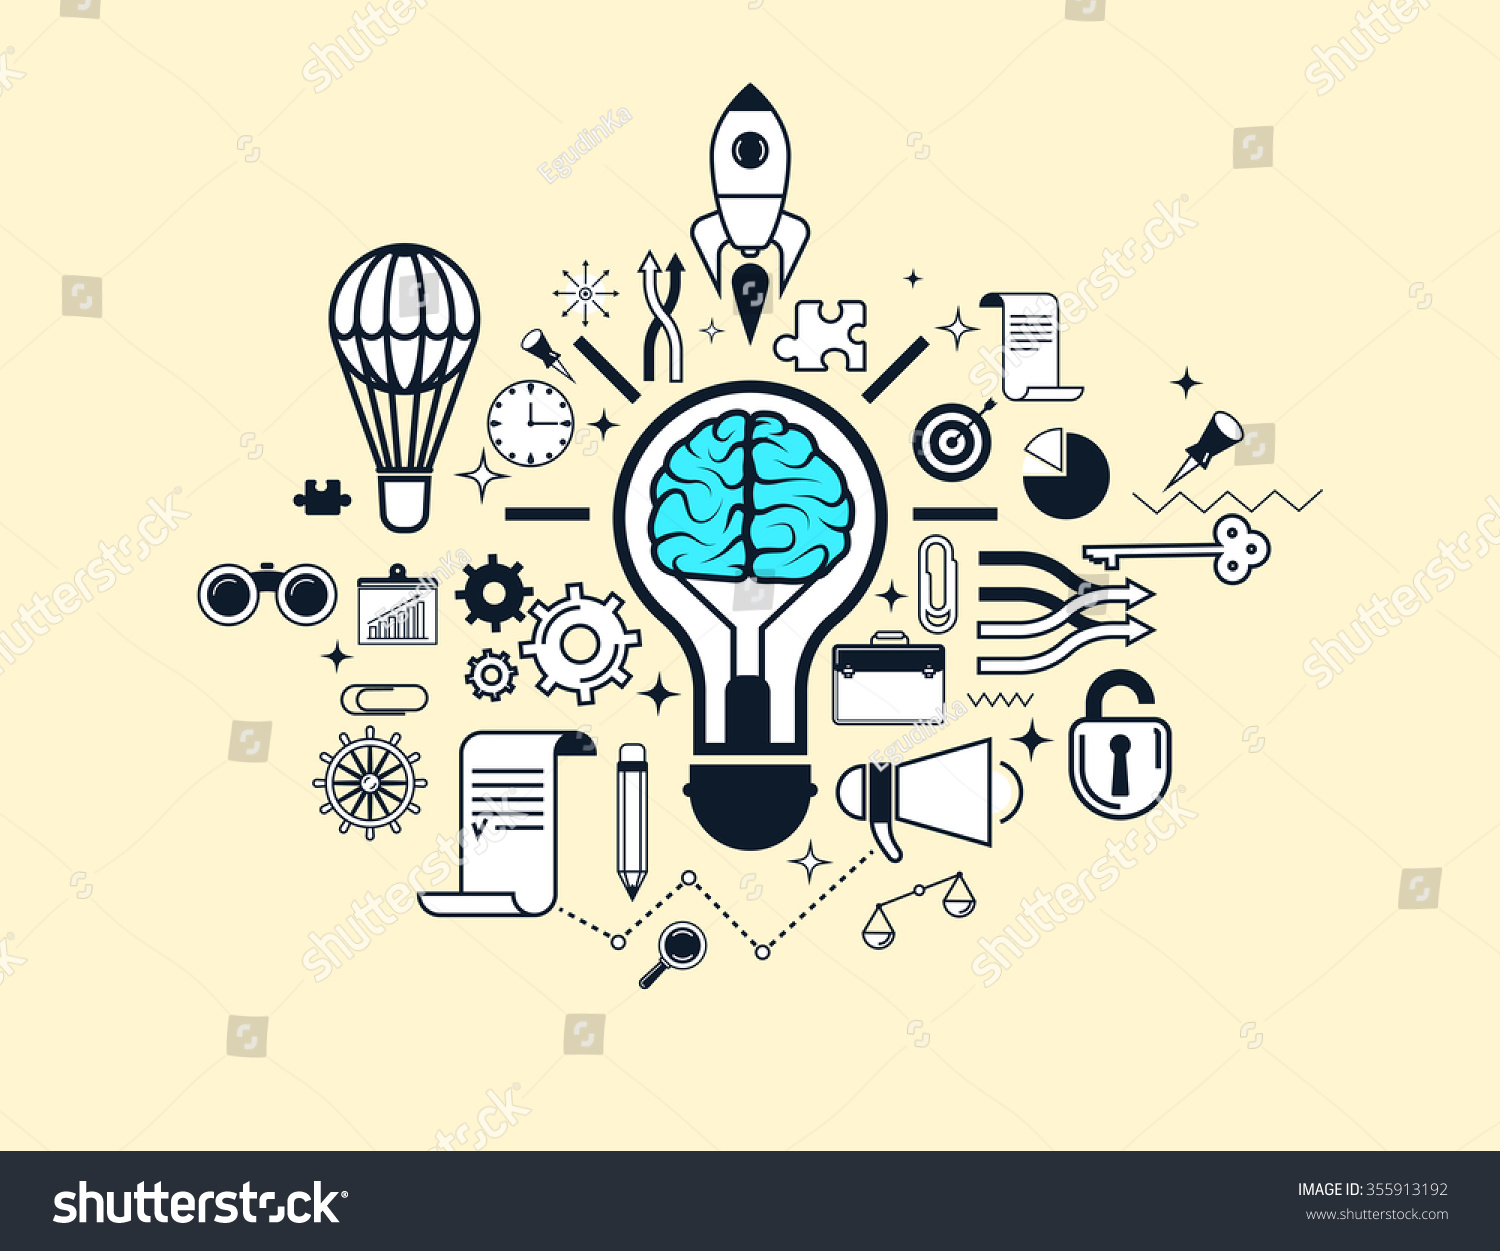 elements for web design or presentation 355913192 shutterstock